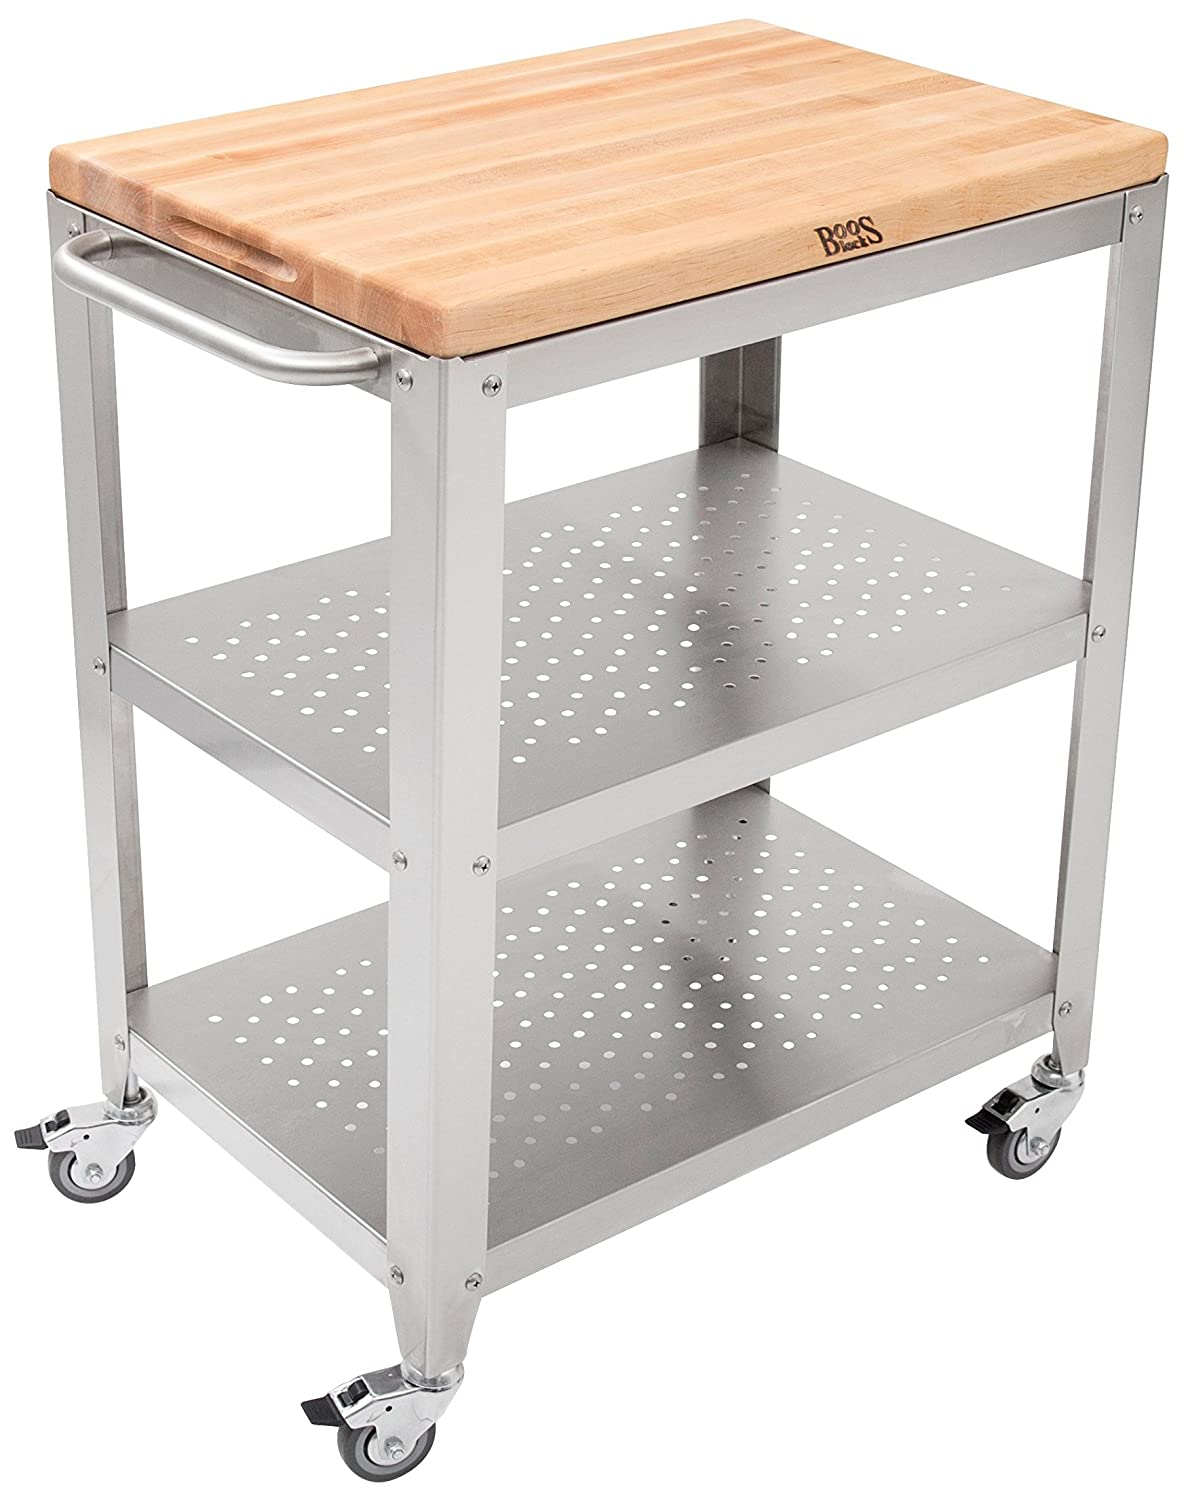 John Boos Block Culinarte Stainless Steel Kitchen Cart with 30 by 20 Inch Removable Maple Cutting Board Top, Stainless Steel Shelves and Casters